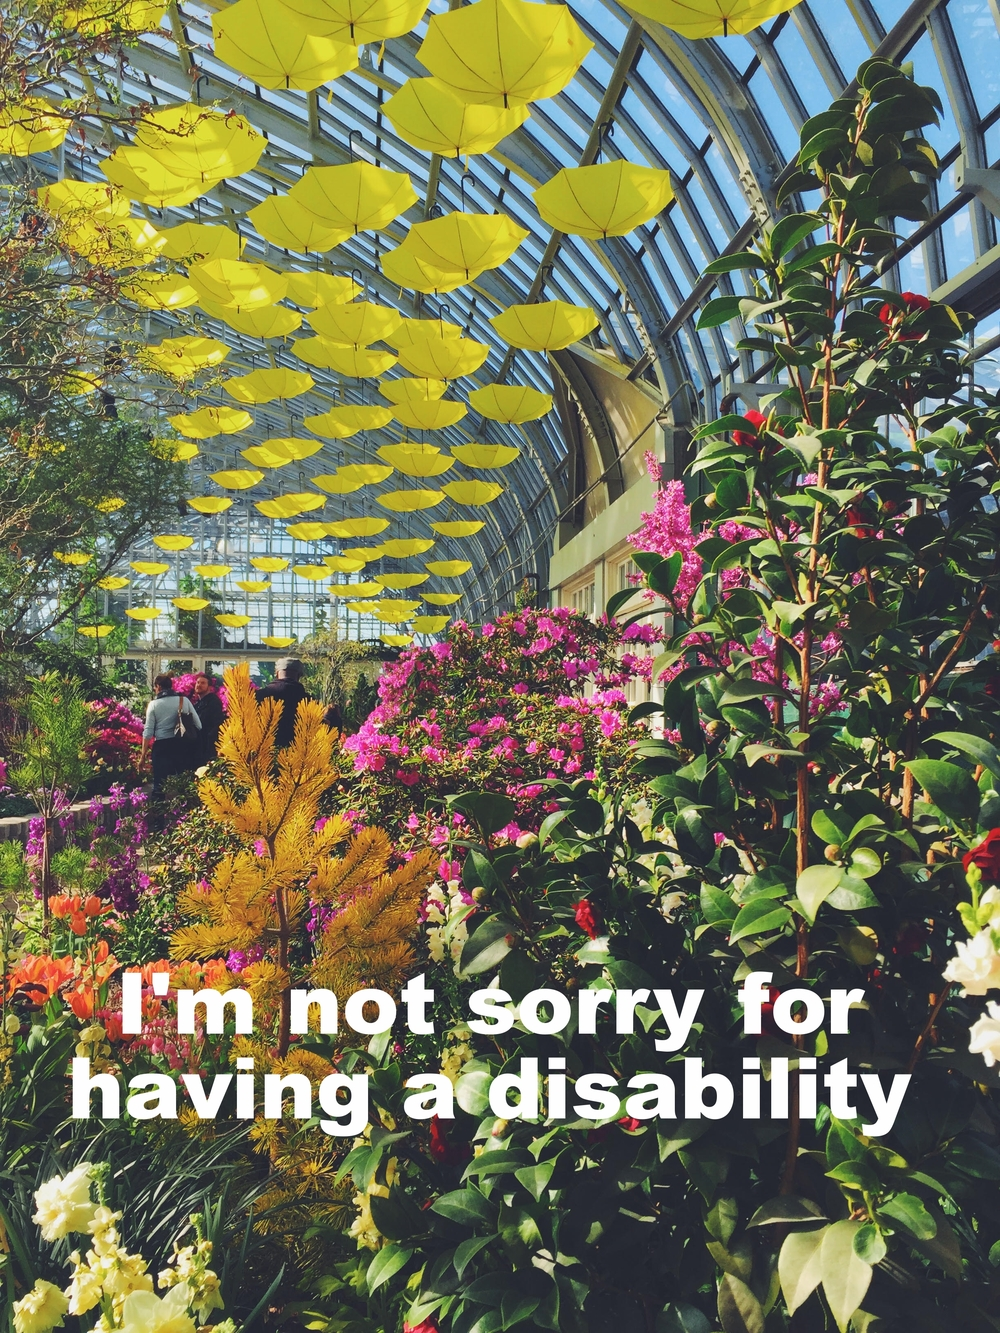 "Justin January 14 2016 Image of a plant conservatory, where colorful plants (orange, yellow, pink, green) fill the image. Glass windows arch above, with yellow umbrellas artistically hanging from the glass ceiling. ""I'm not sorry for having a disability"" is overlaid."